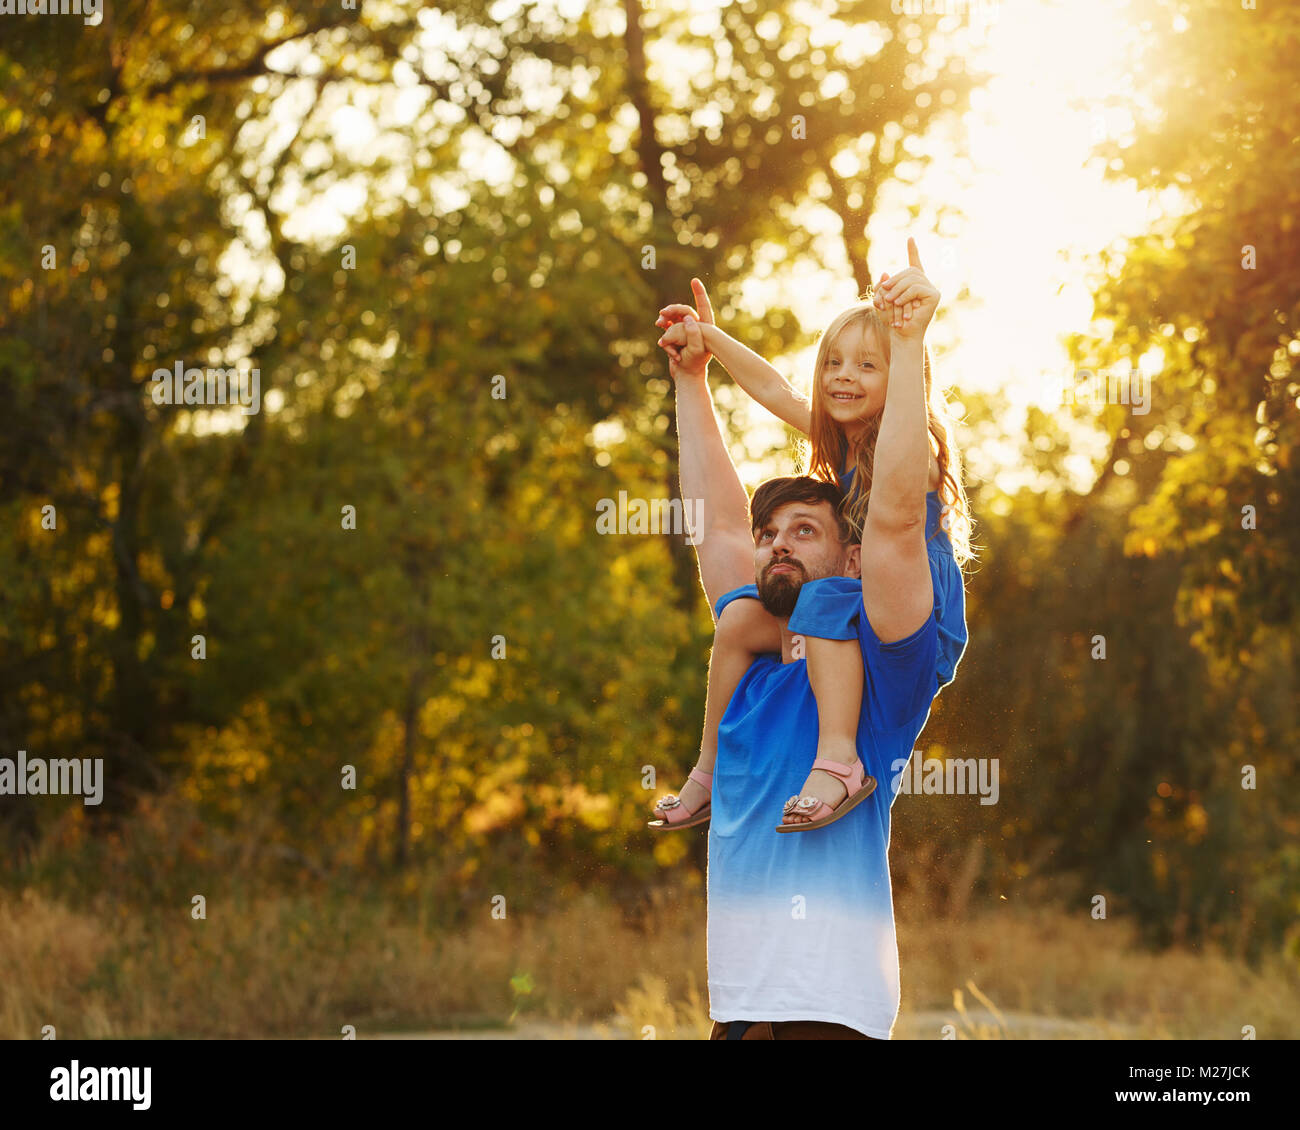 Family time. The father holds the daughter on the shoulders of piggyback. He supports the little girl by the hand. - Stock Image